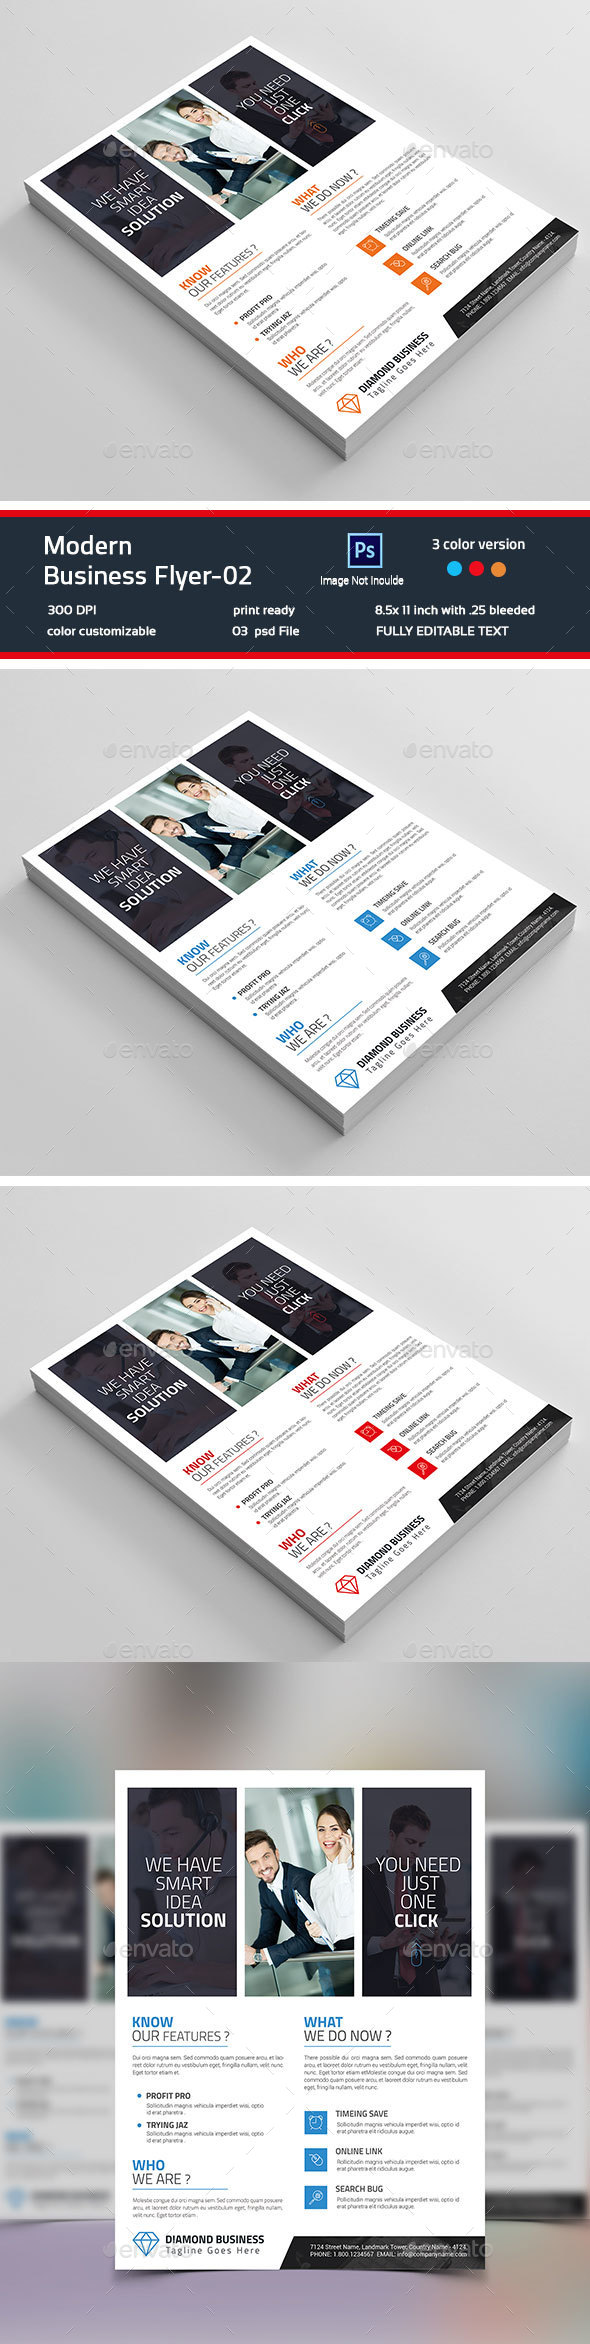 Modern Business Flyer-02 - Flyers Print Templates